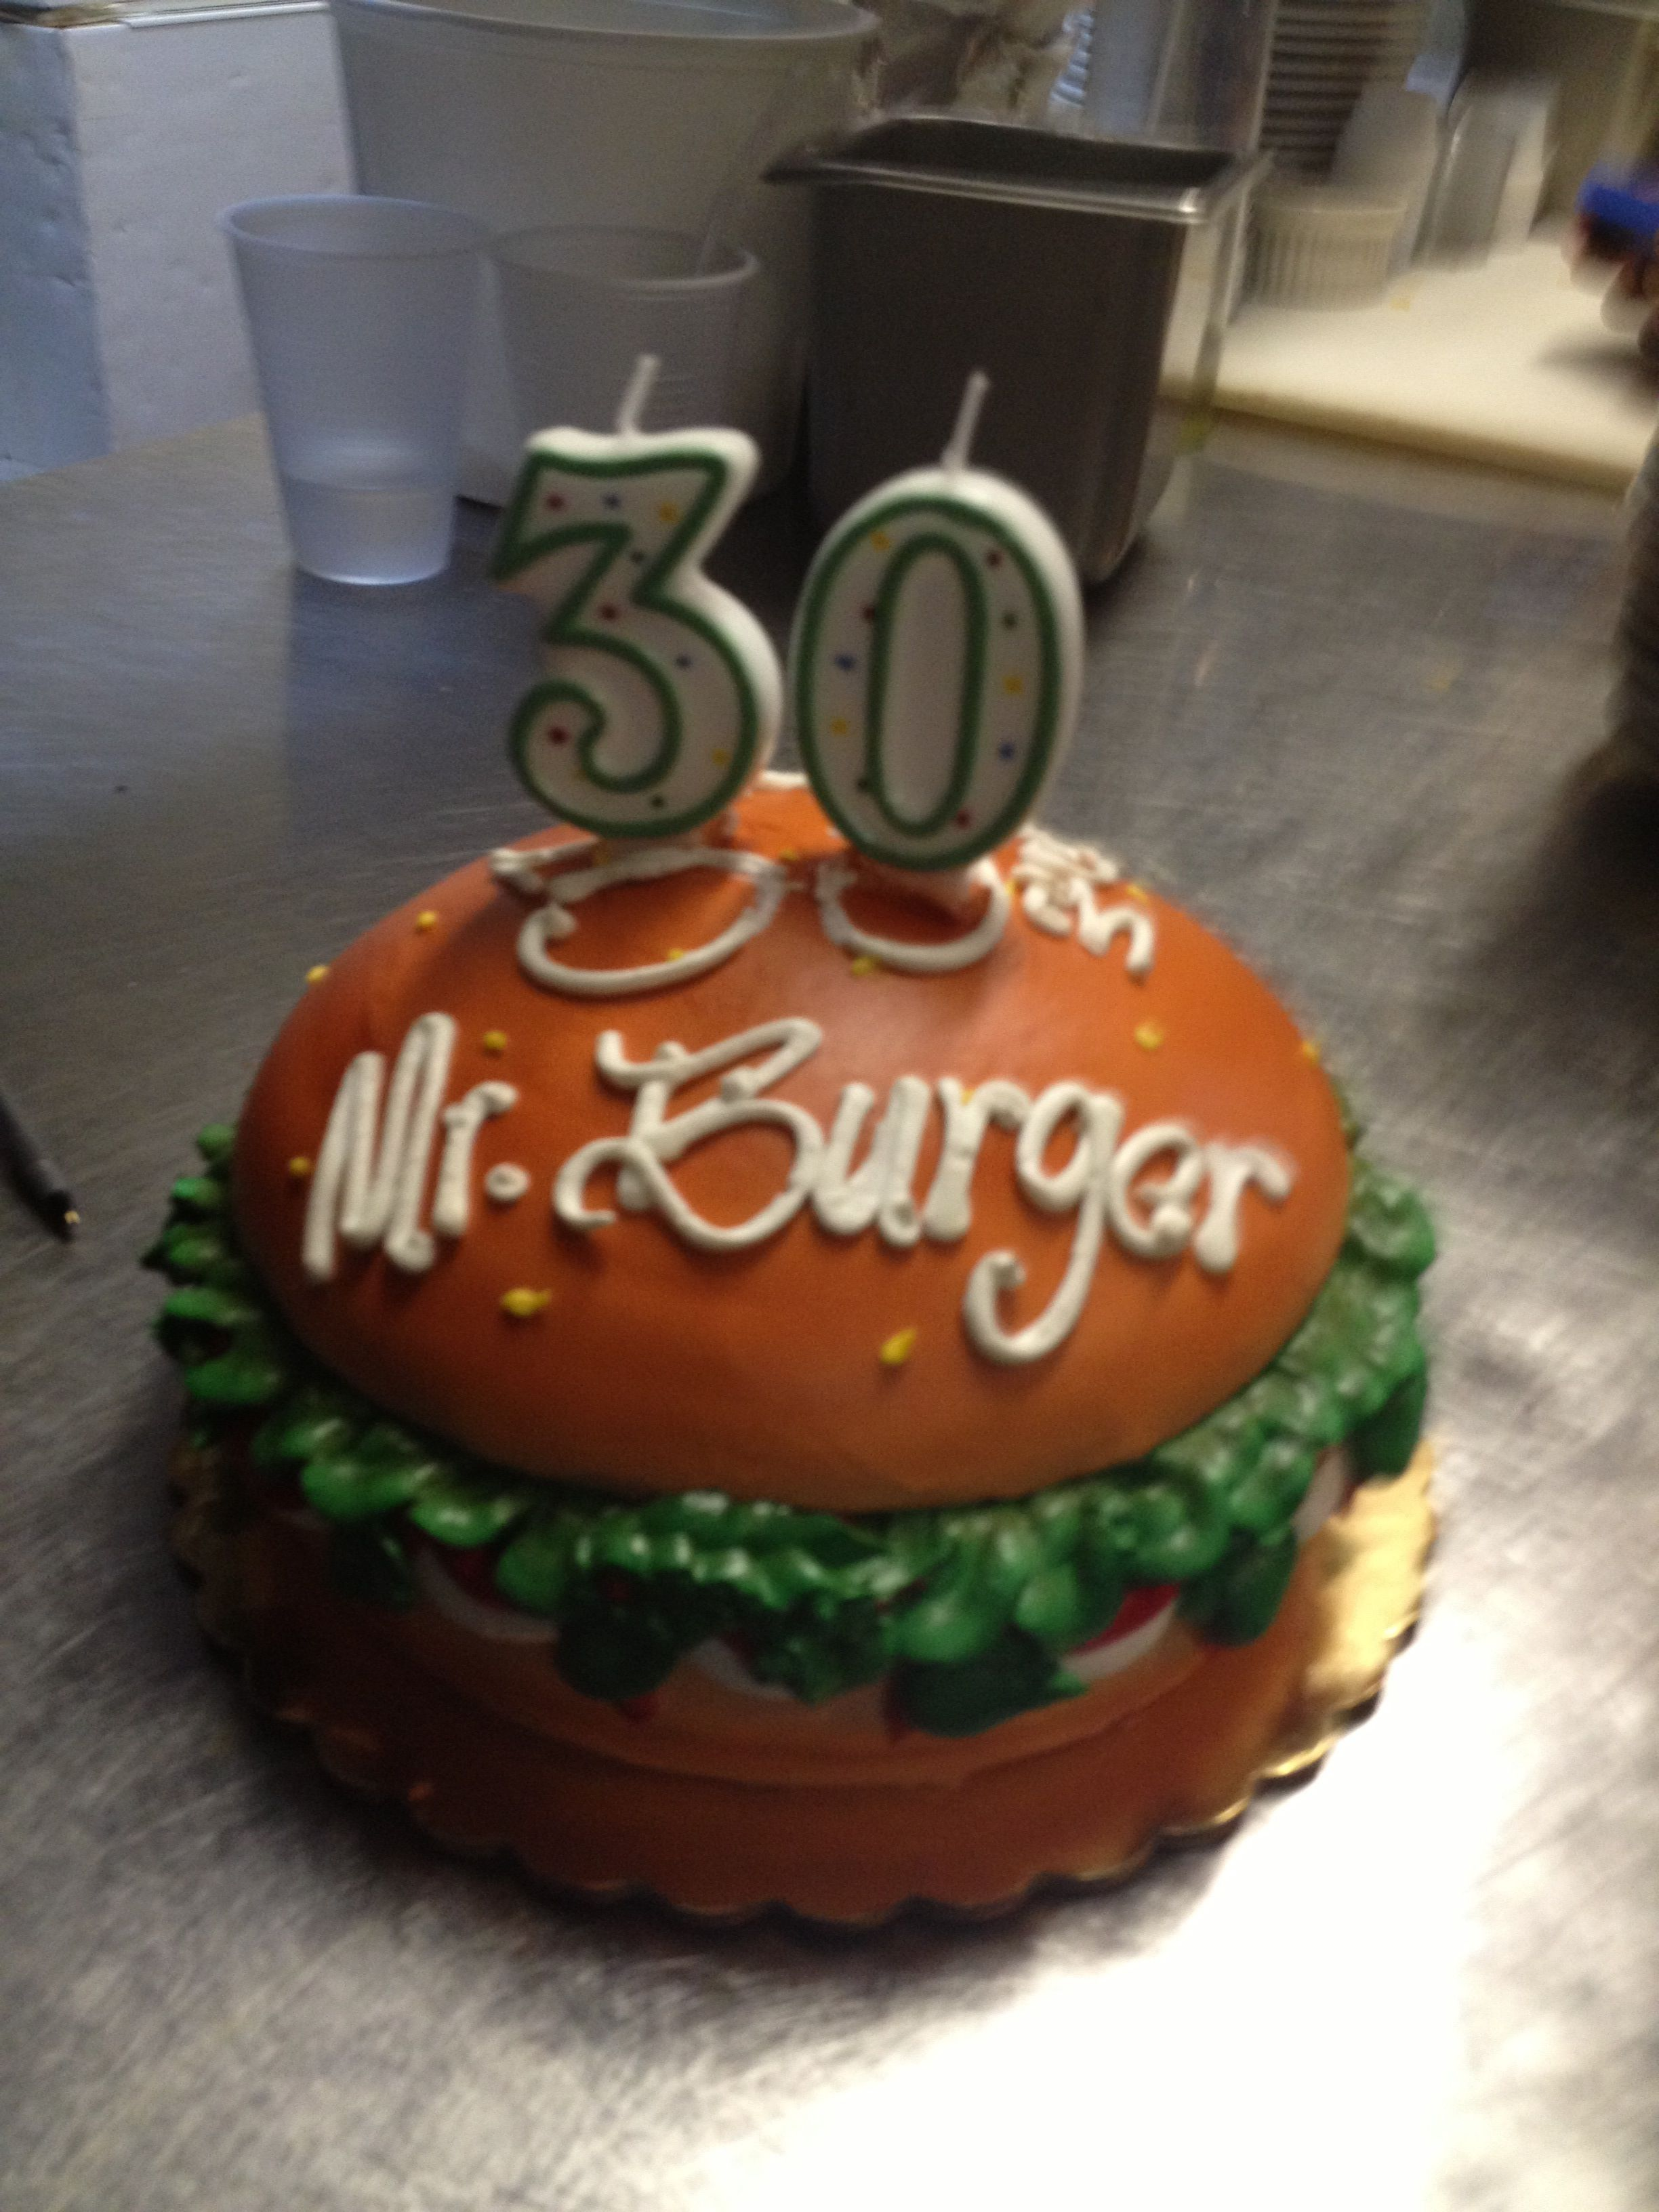 Hubby S Birthday Cake 3 Credit To Baked In Perfection In Port